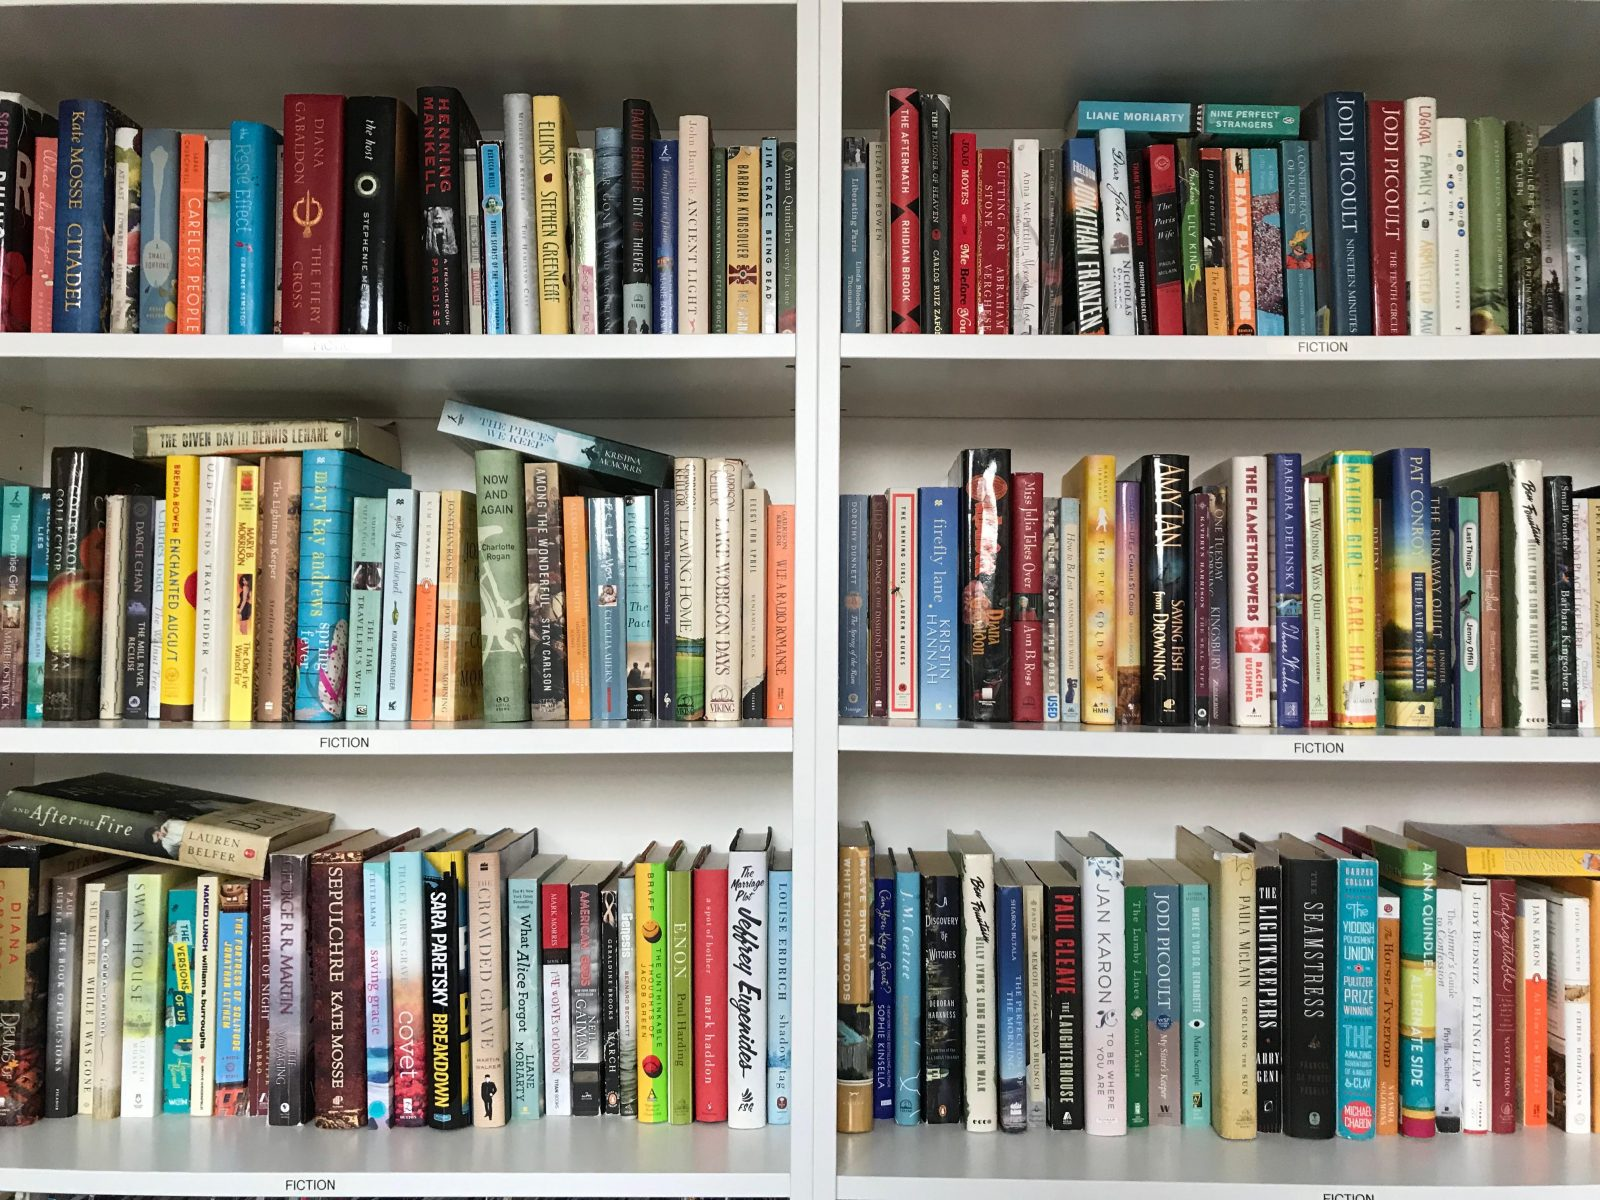 Two full bookcases